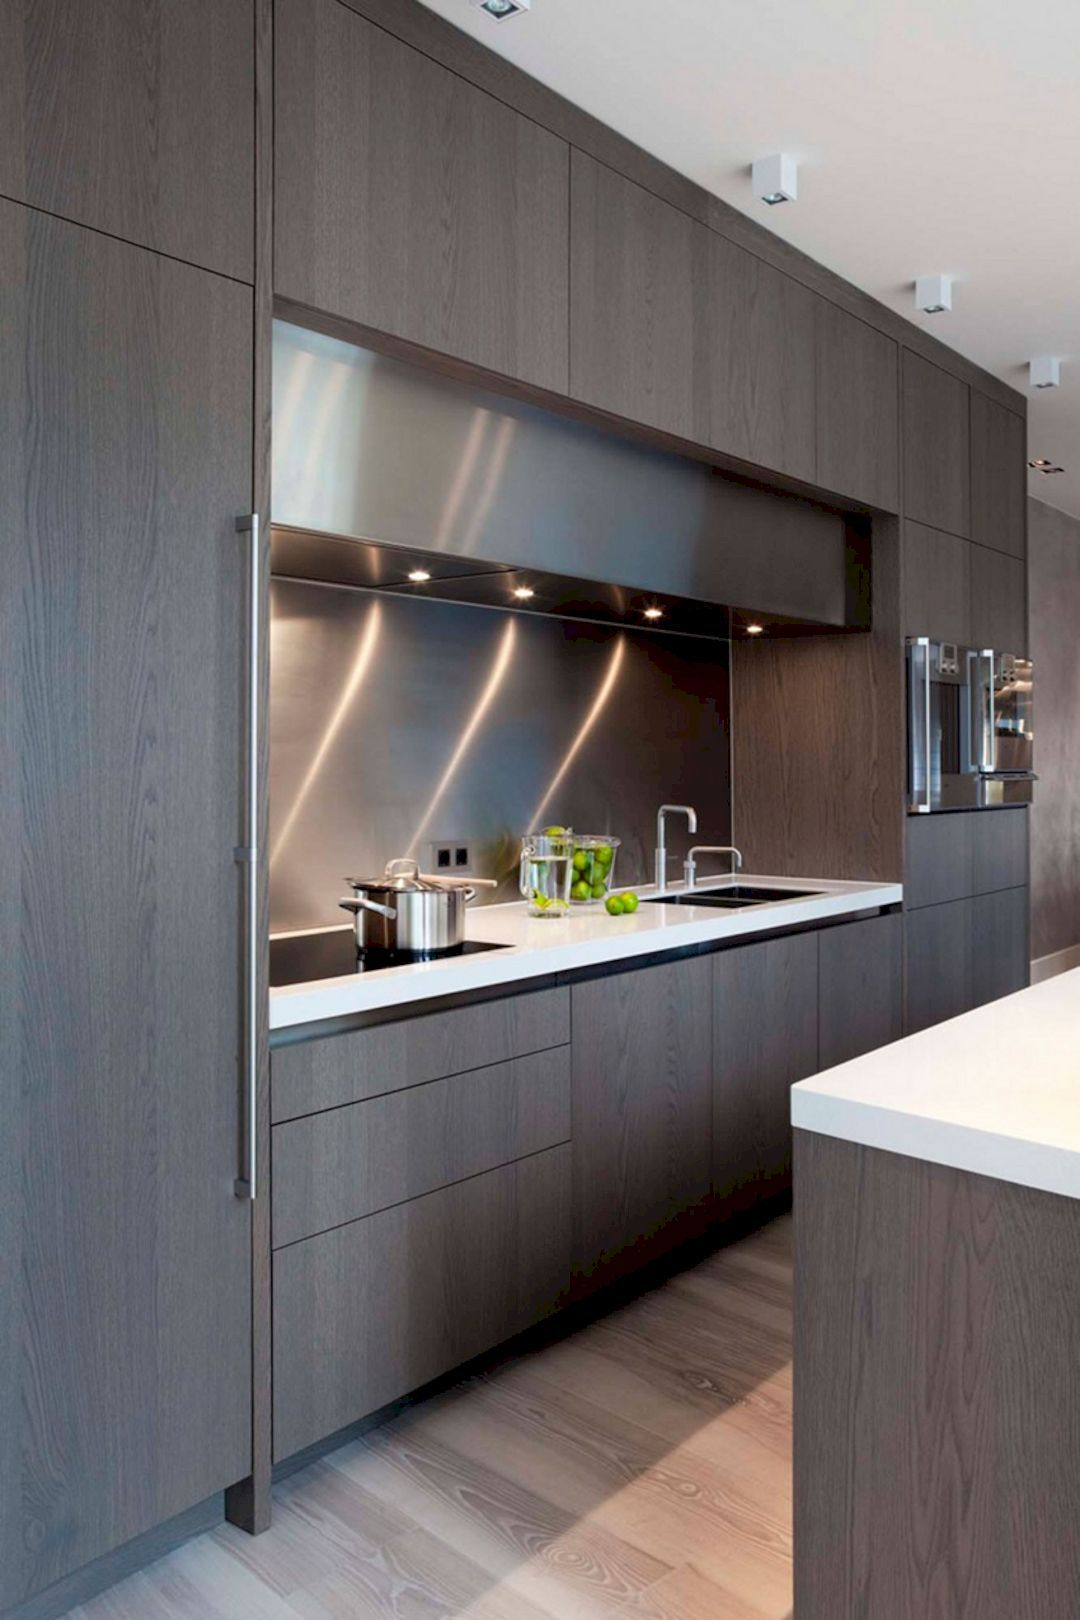 image modern kitchen. Stylish Modern Kitchen Cabinet: 127 Design Ideas Https://www.futuristarchitecture. Image